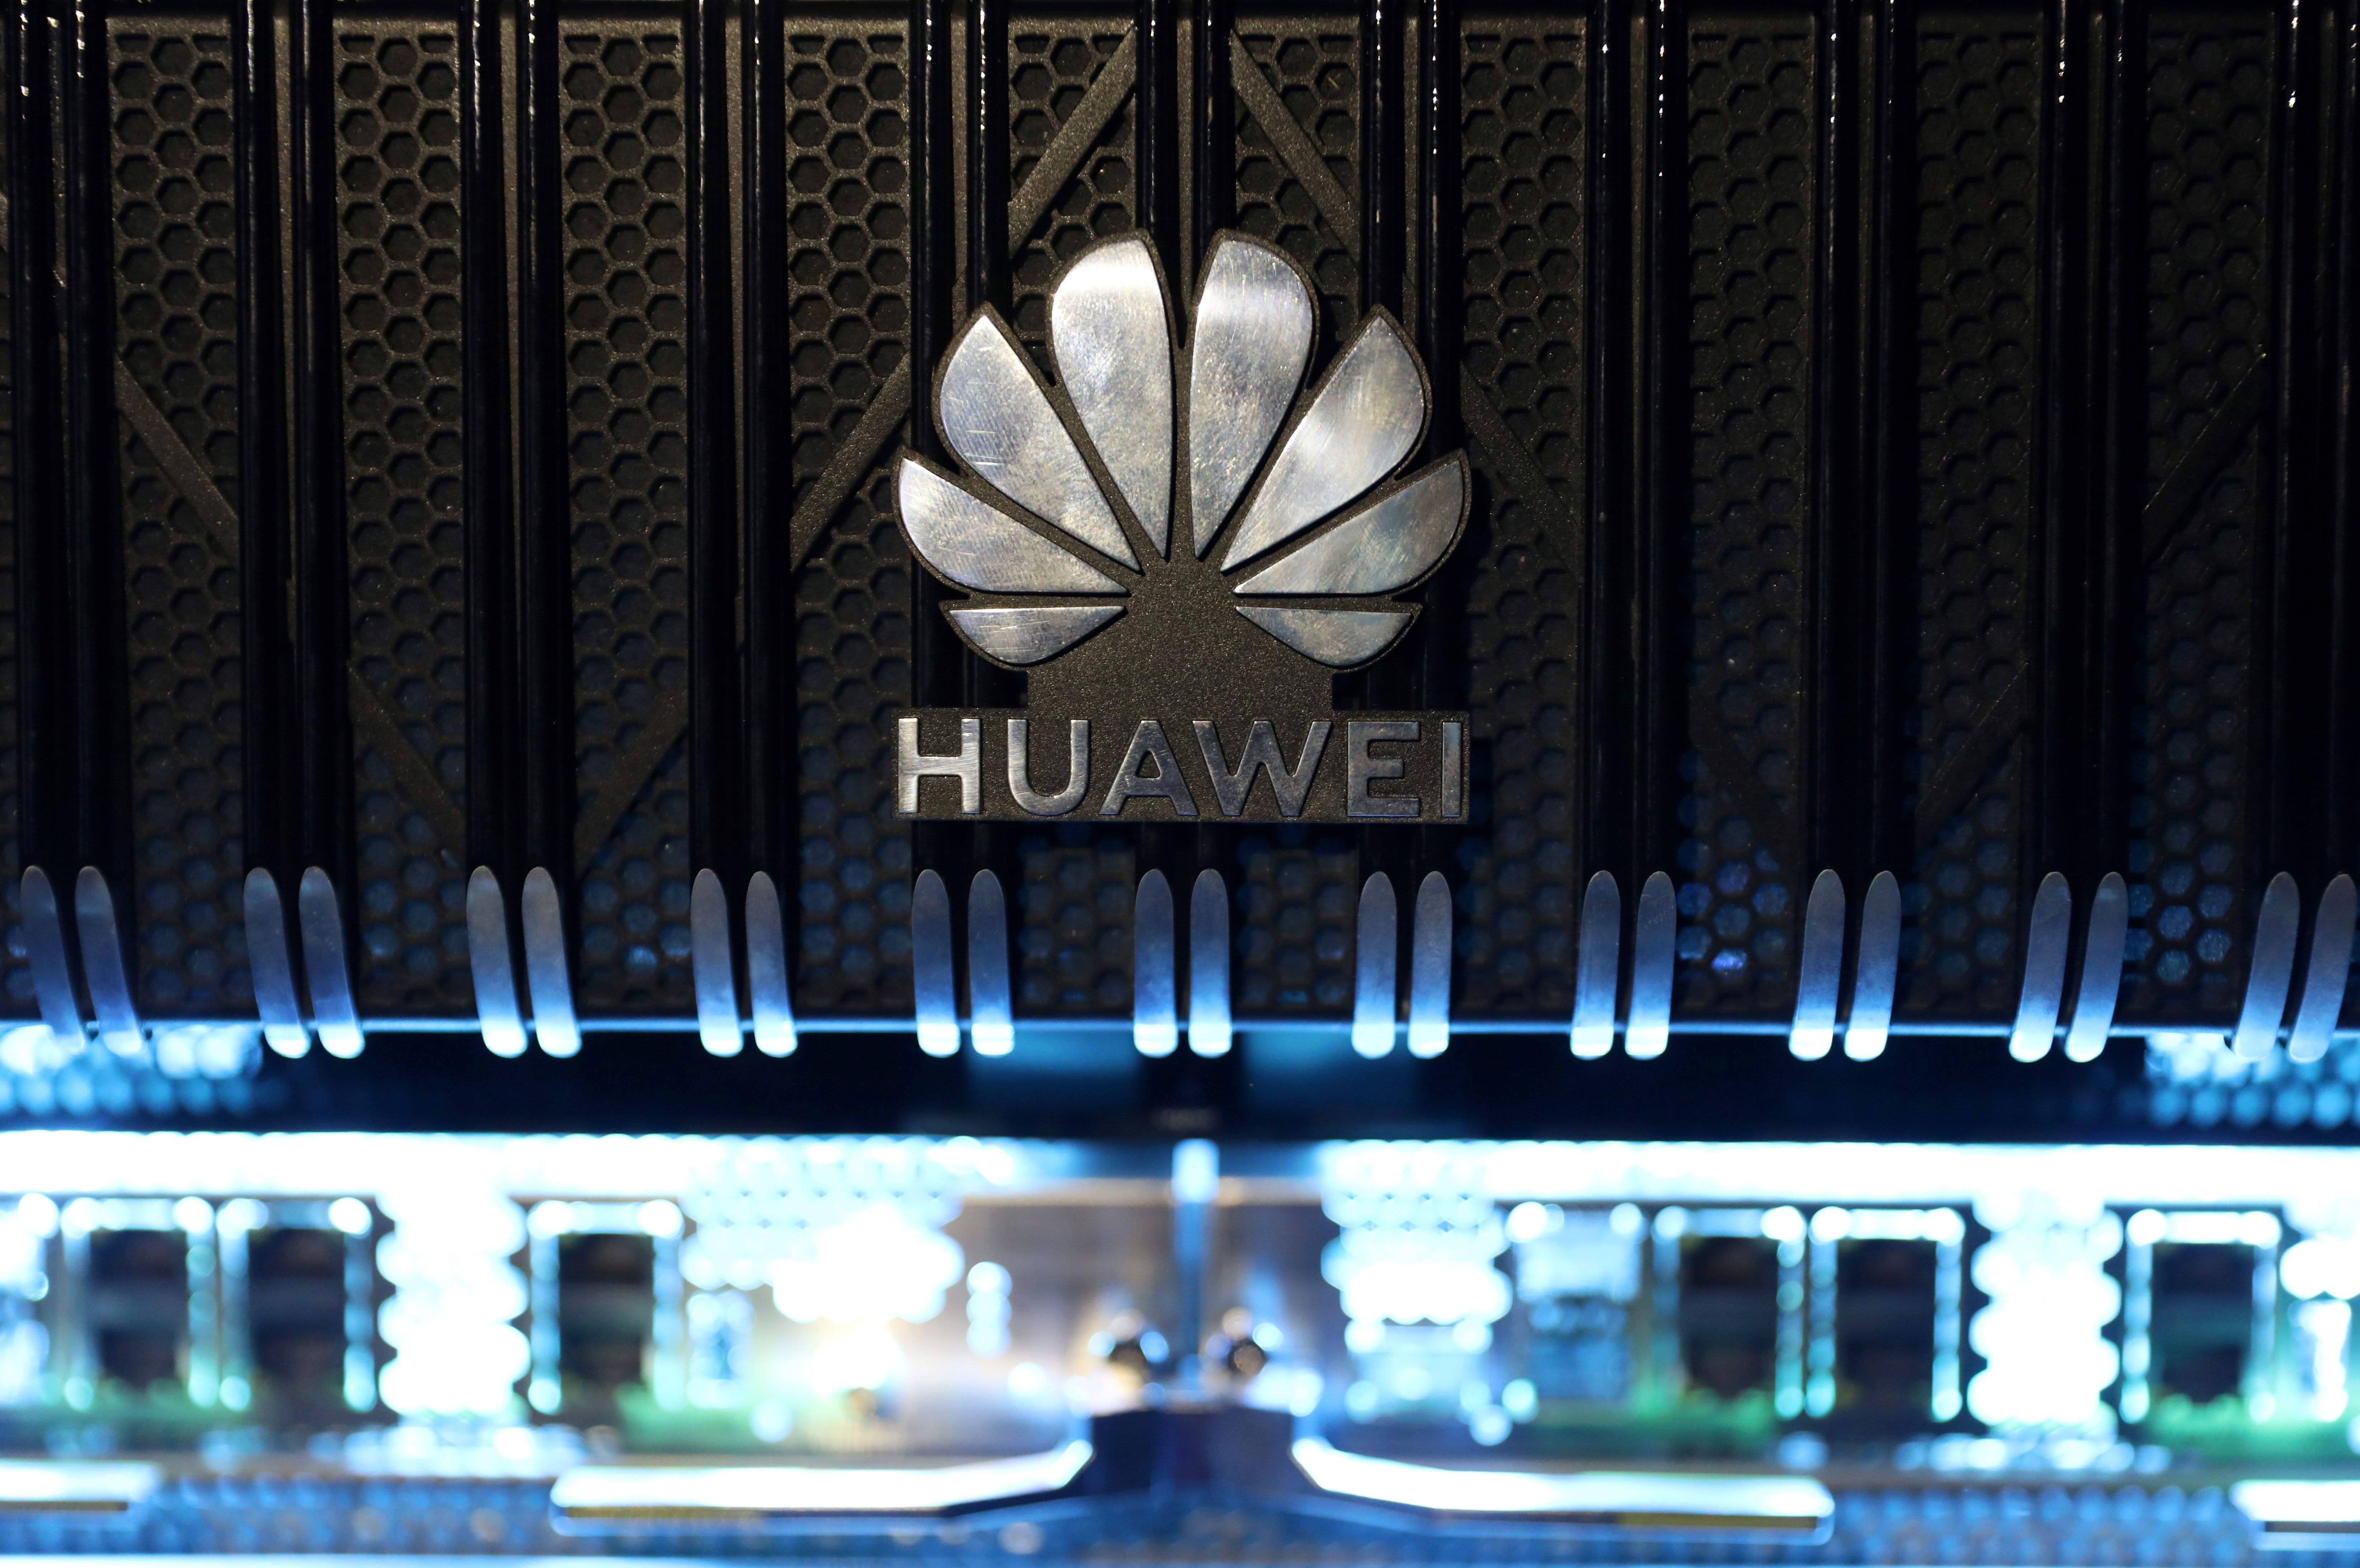 British mobile carriers warn removing Huawei will cause 'blackouts' and cost billions – CNBC